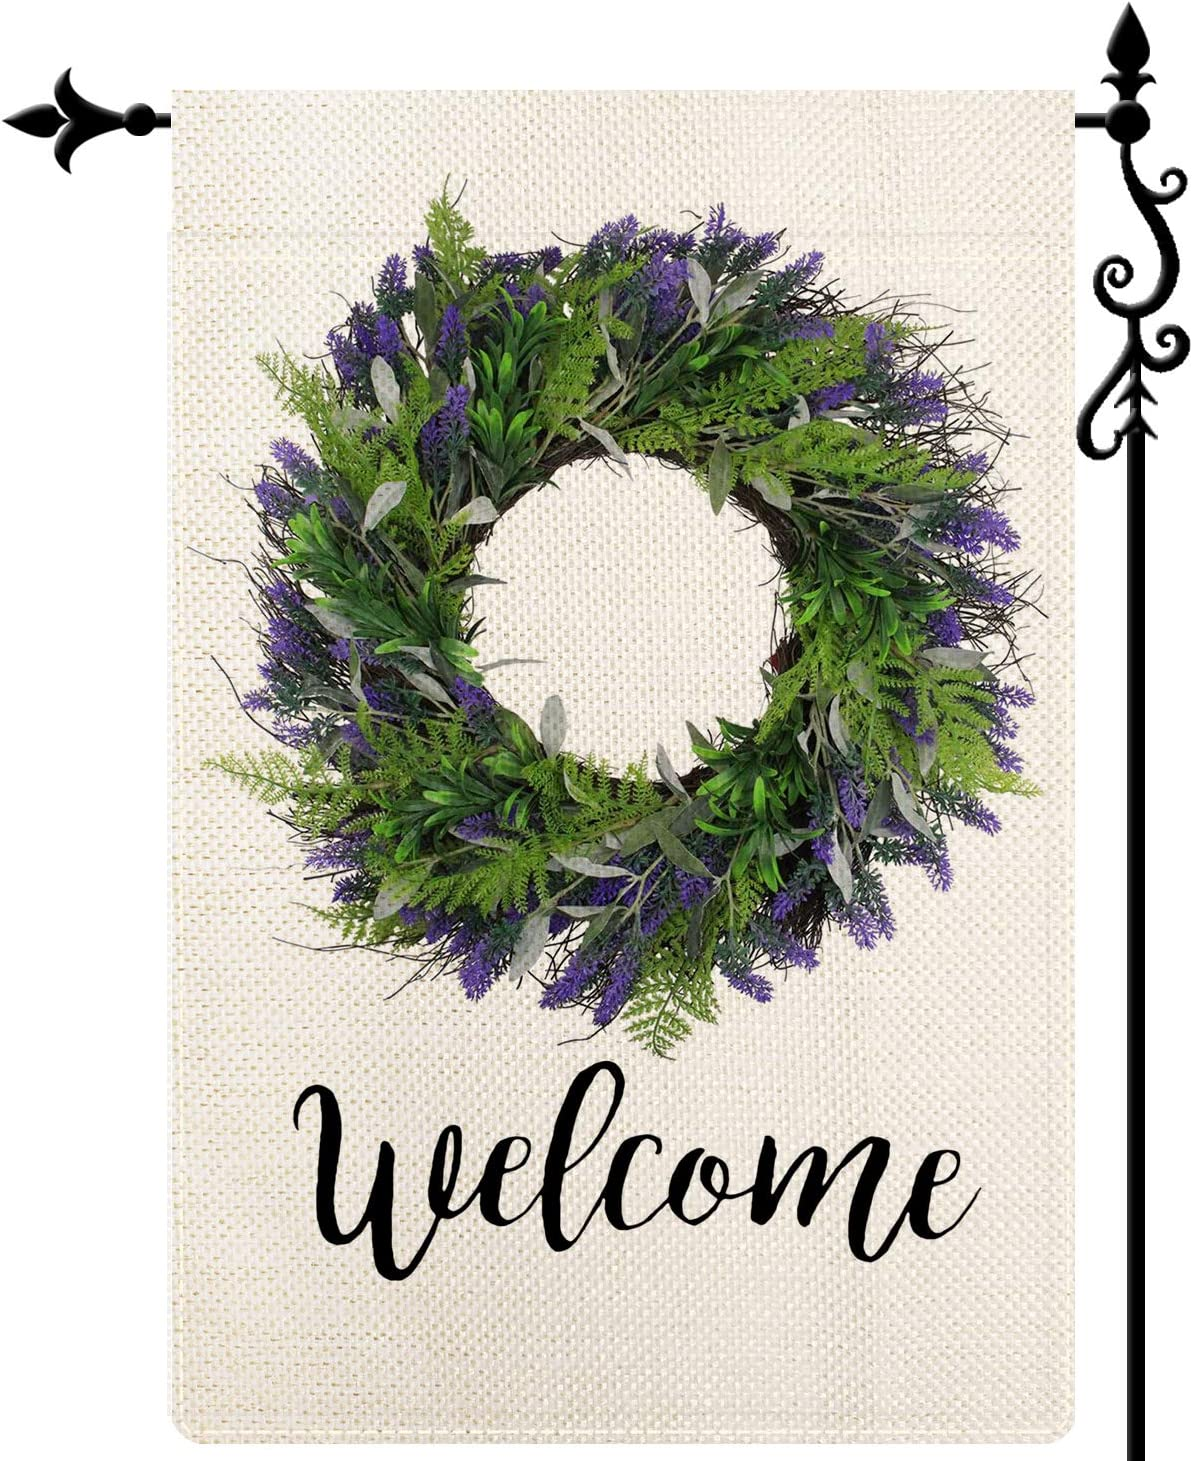 Coskaka Welcome Lavender Wreath Garden Flag Double Sized Seasonal Spring Summer Vertical Double Sided Holiday Seasonal Burlap Yard Outdoor Decoration 12.5 x 18